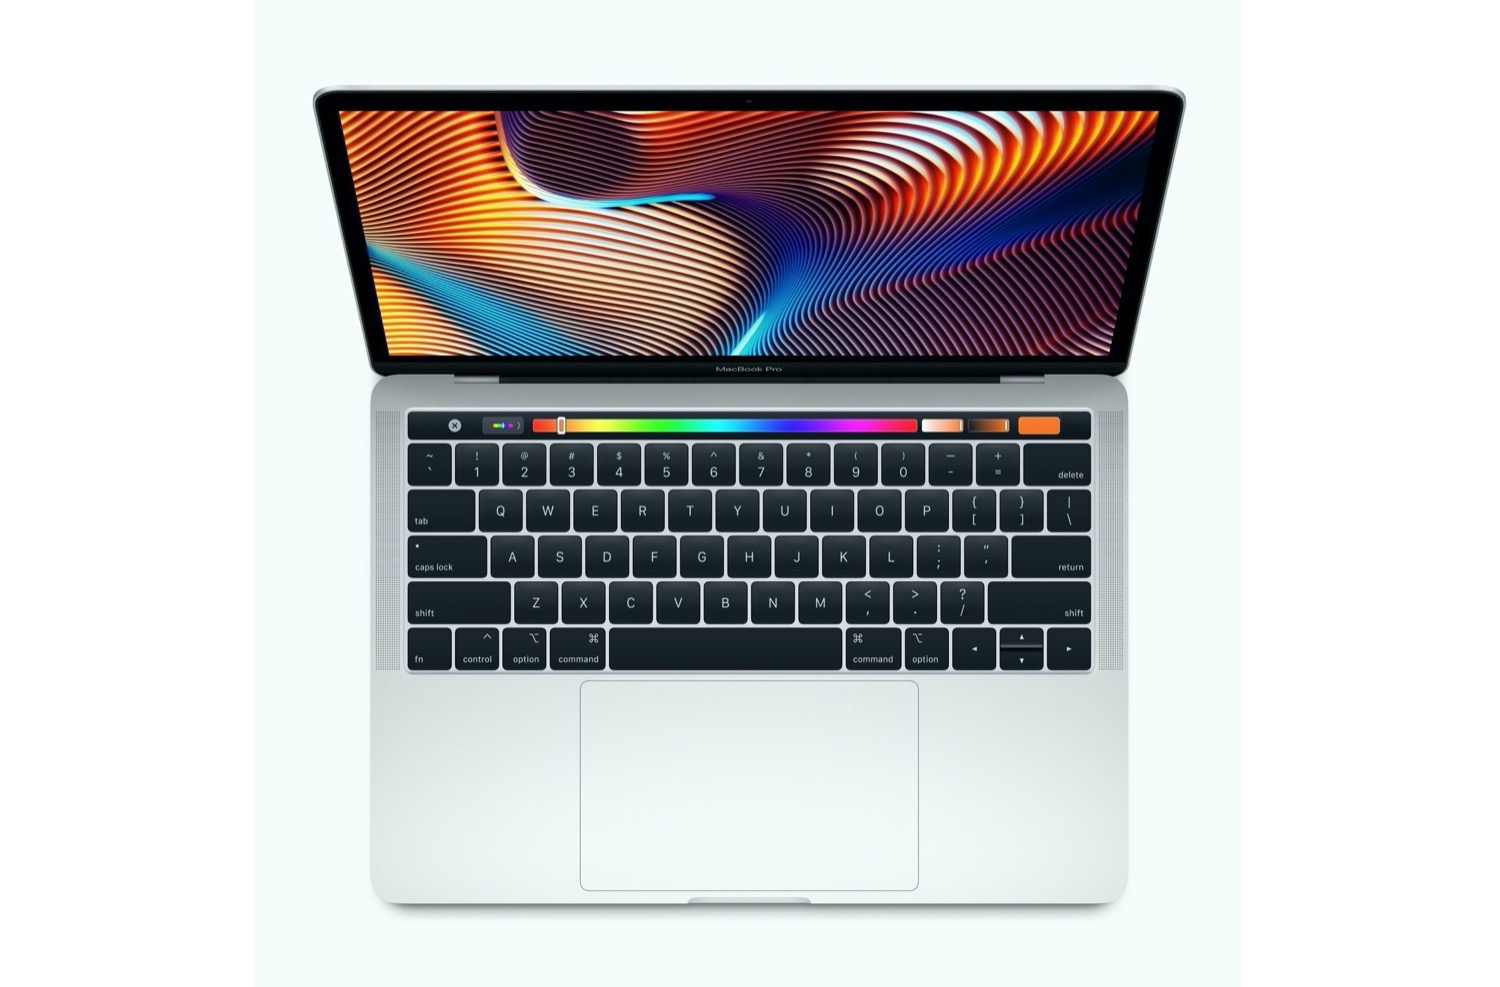 Macbook Pro J223 To Be Announced Next Month With New Macbook Pro 16 Arriving At Wwdc 2020 Notebookcheck Net News